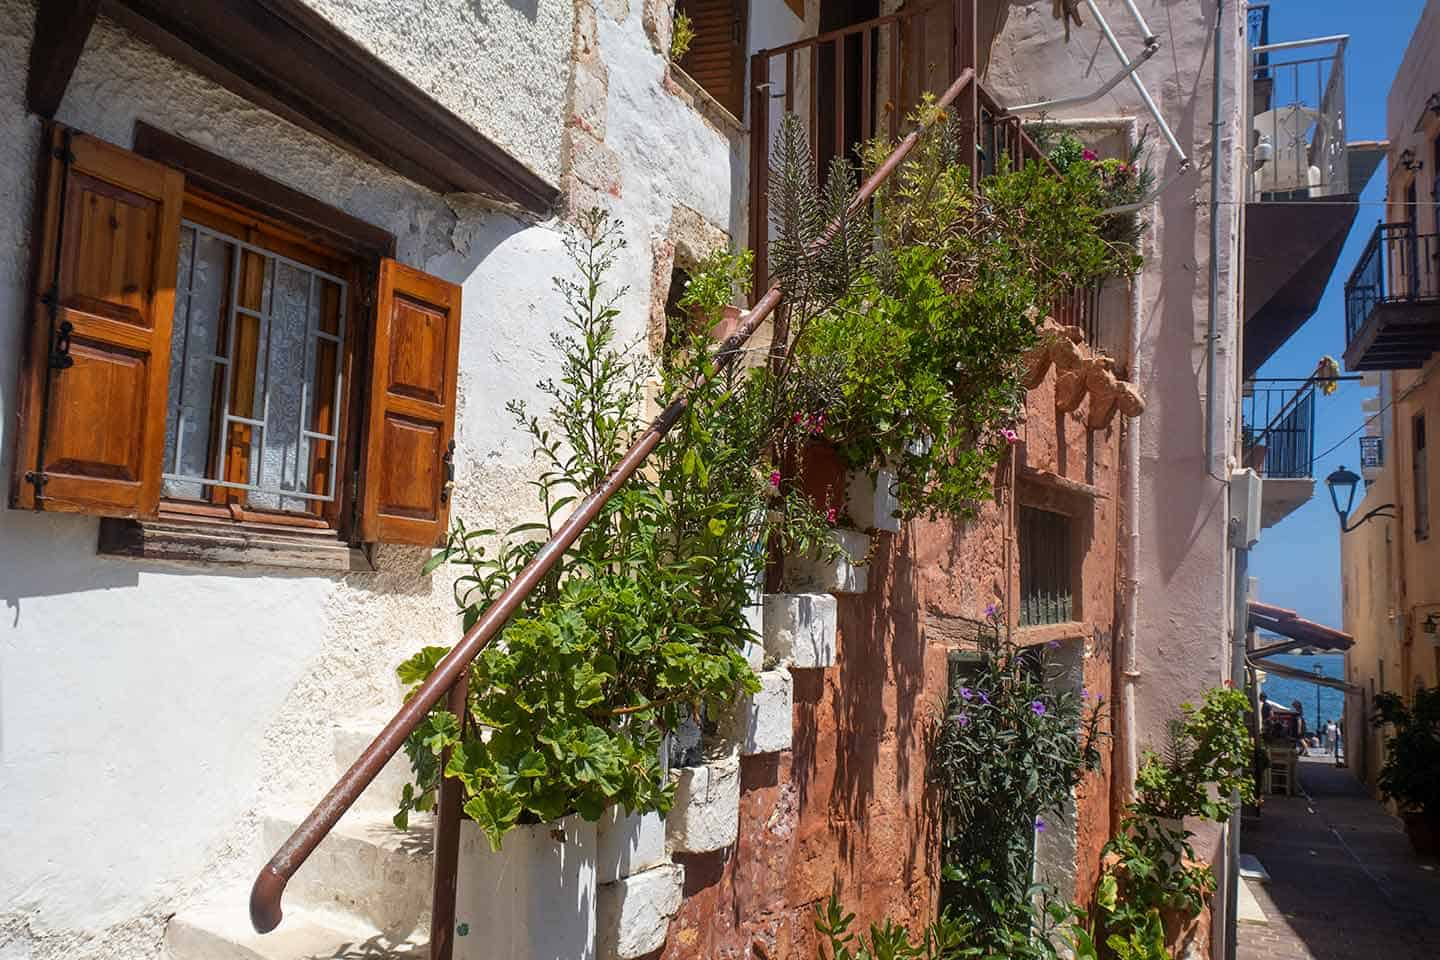 Image of a house with a staircase outside in Chania's Old Town Greece